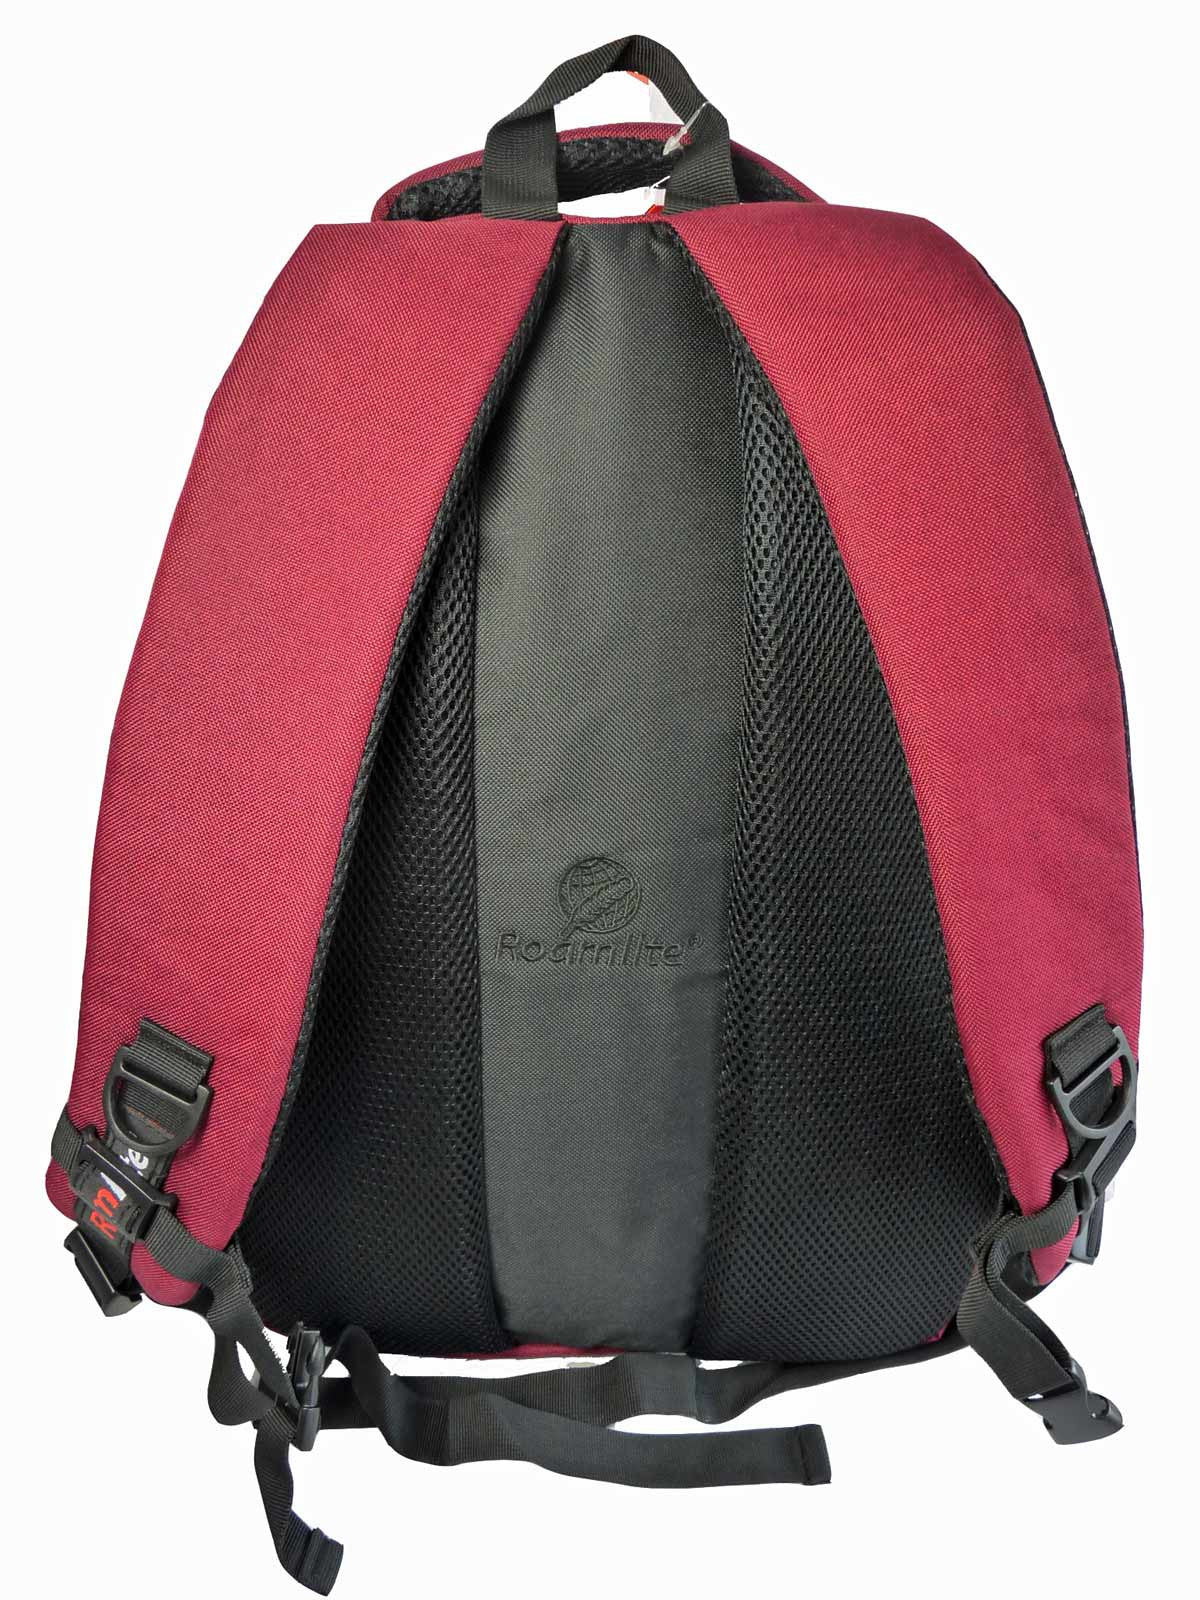 Laptop Macbook Backpack Rucksack Bag RL43Bu Back B View